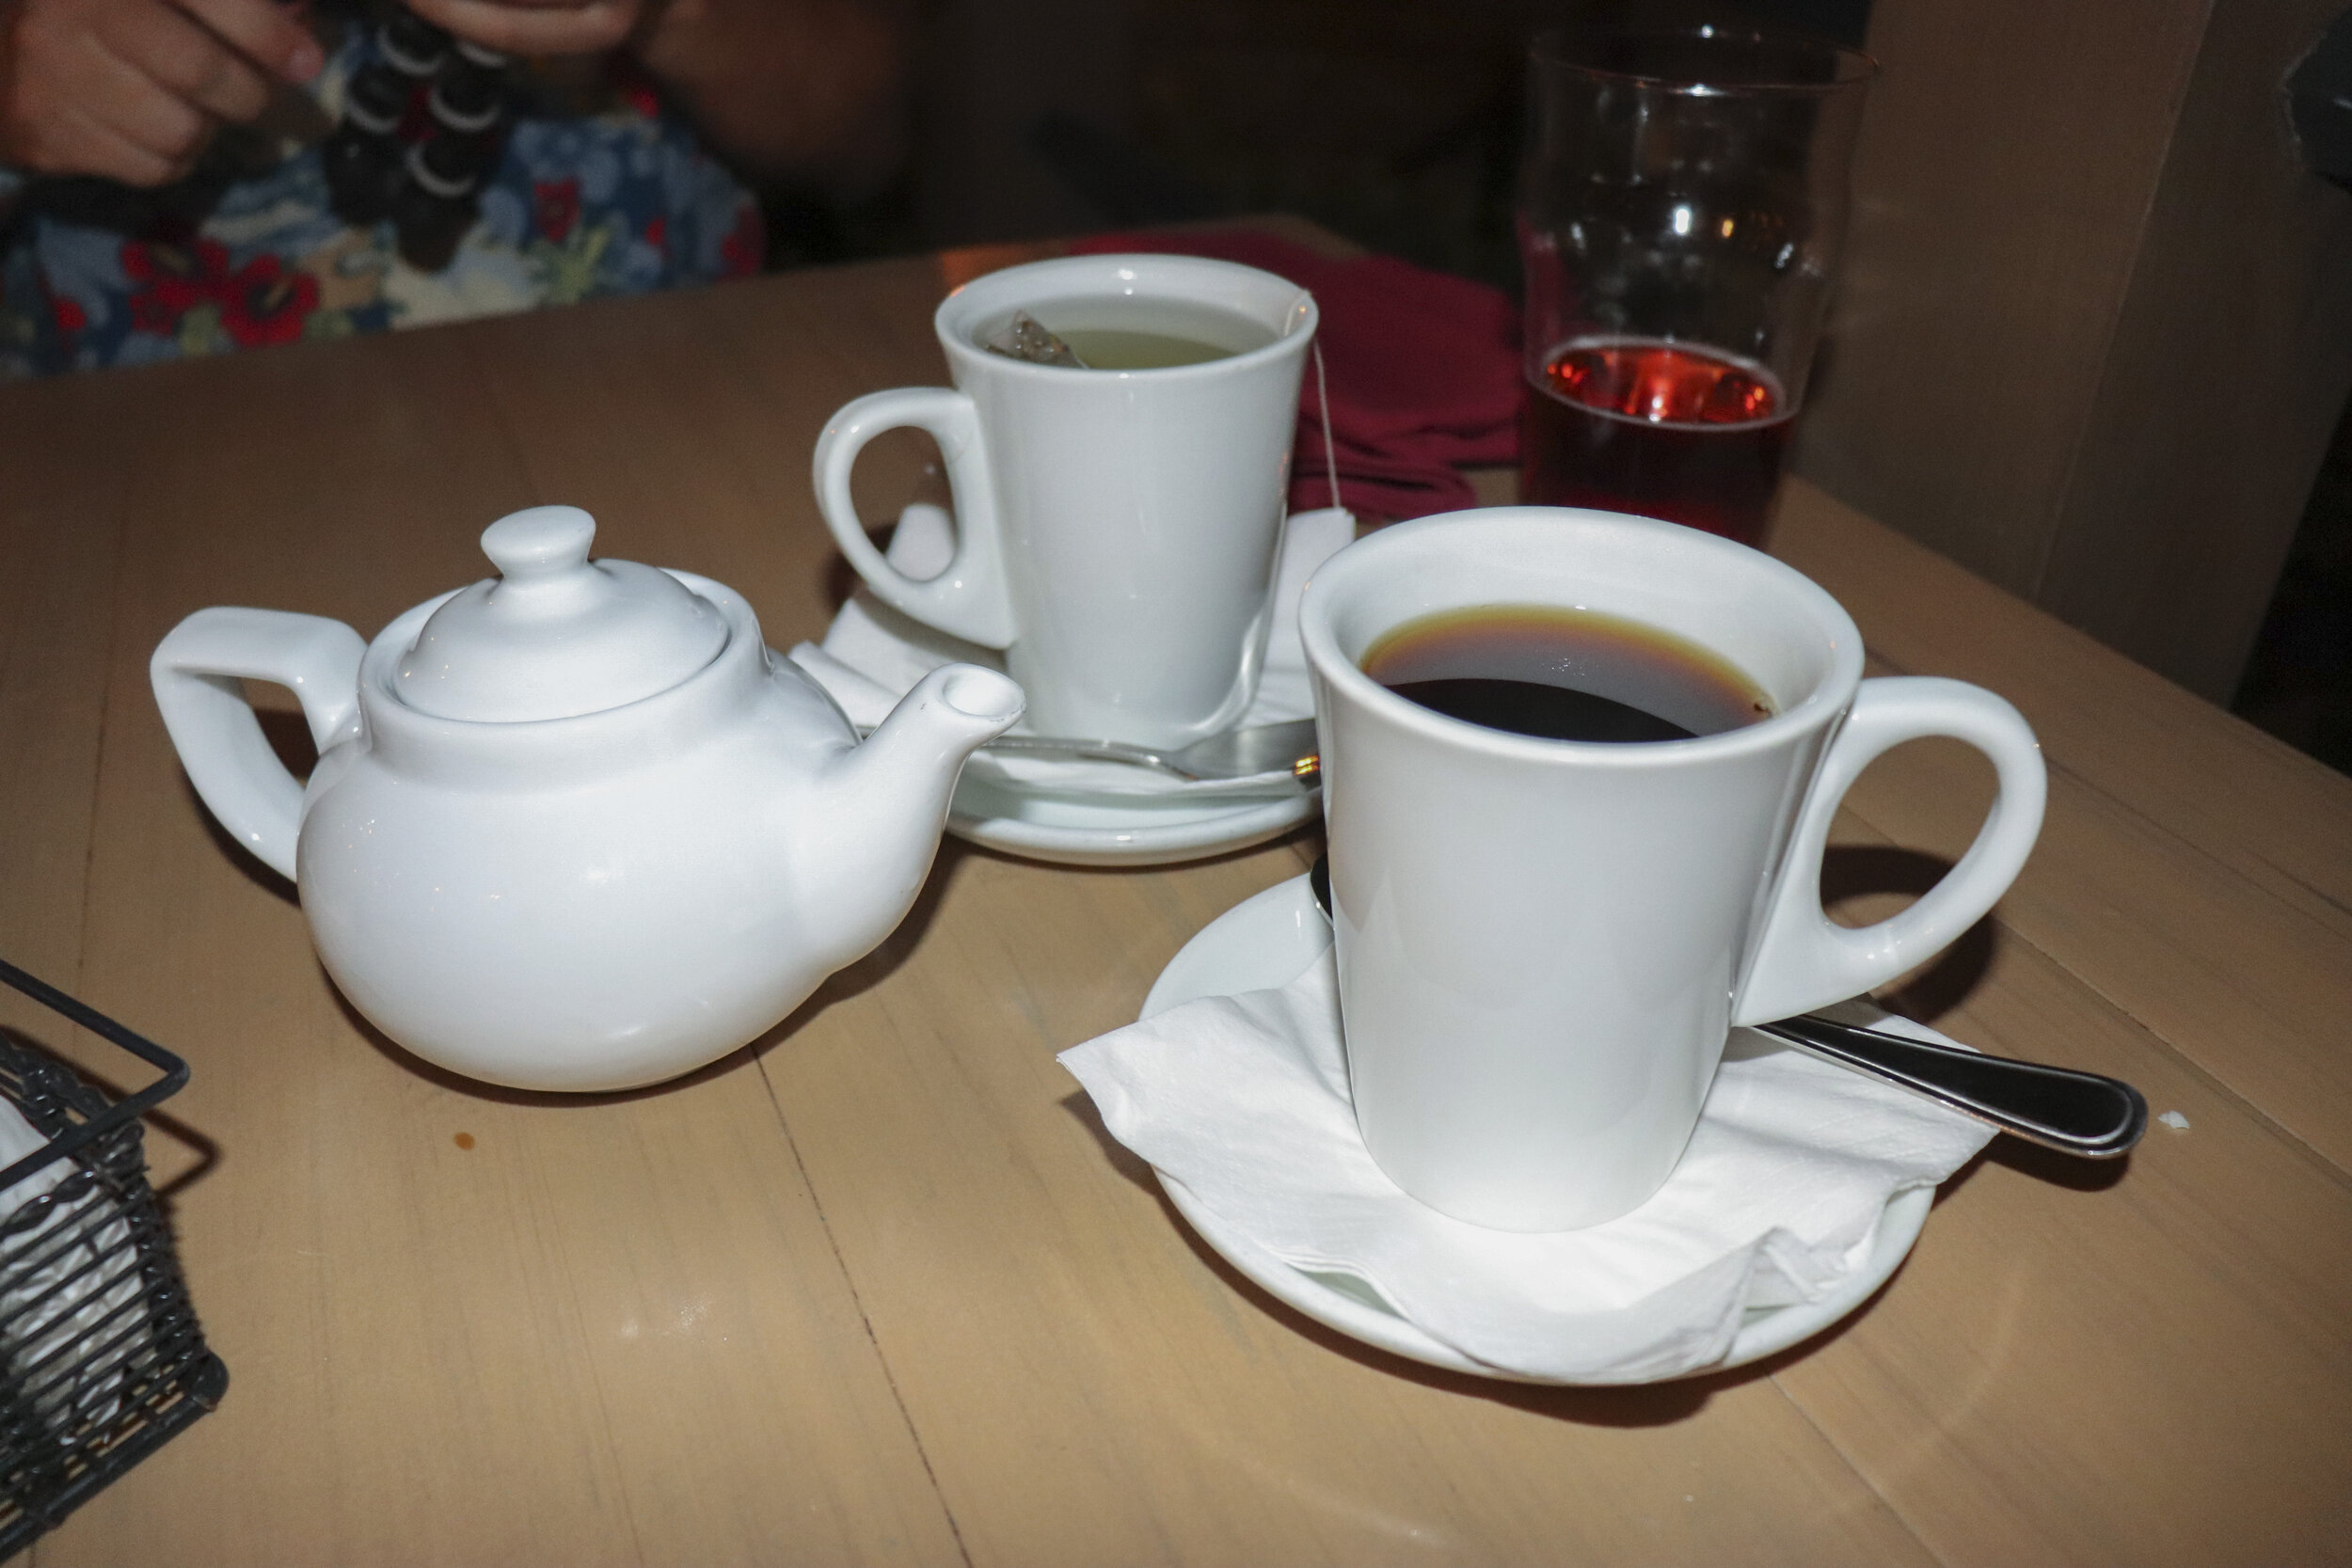 We loved finishing the meal with some coffee and tea.